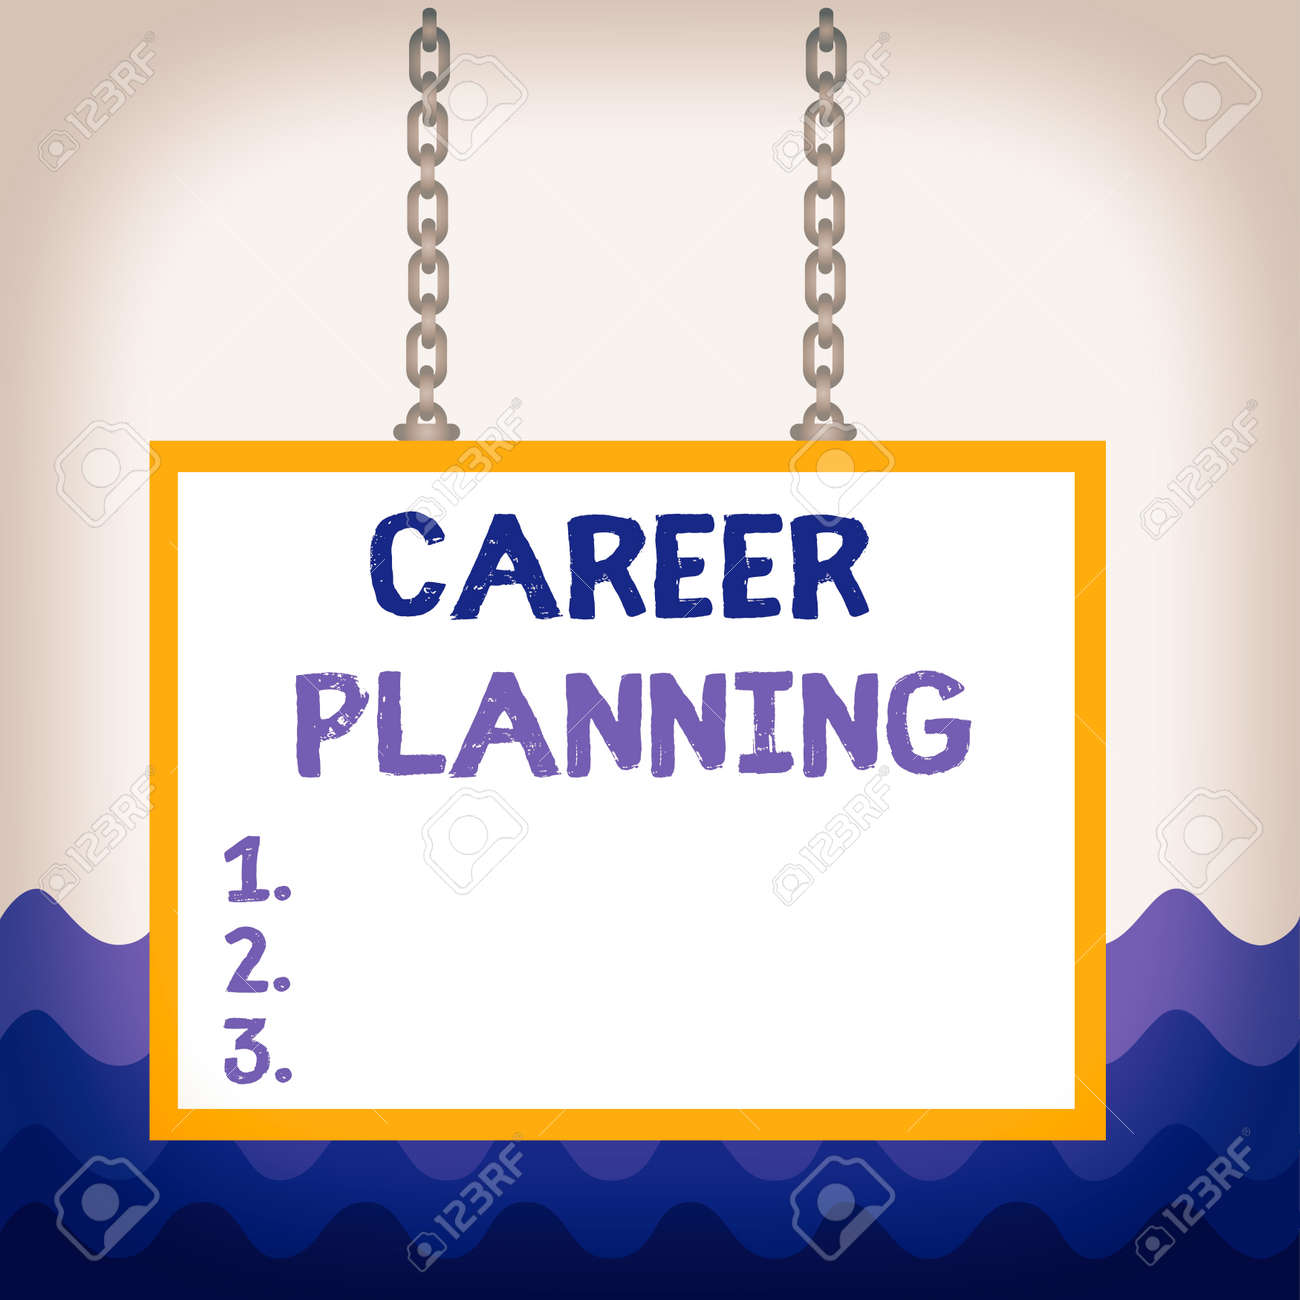 Conceptual hand writing showing Career Planning. Concept meaning Strategically plan your career goals and work success Whiteboard rectangle frame attached surface chain panel - 144433697